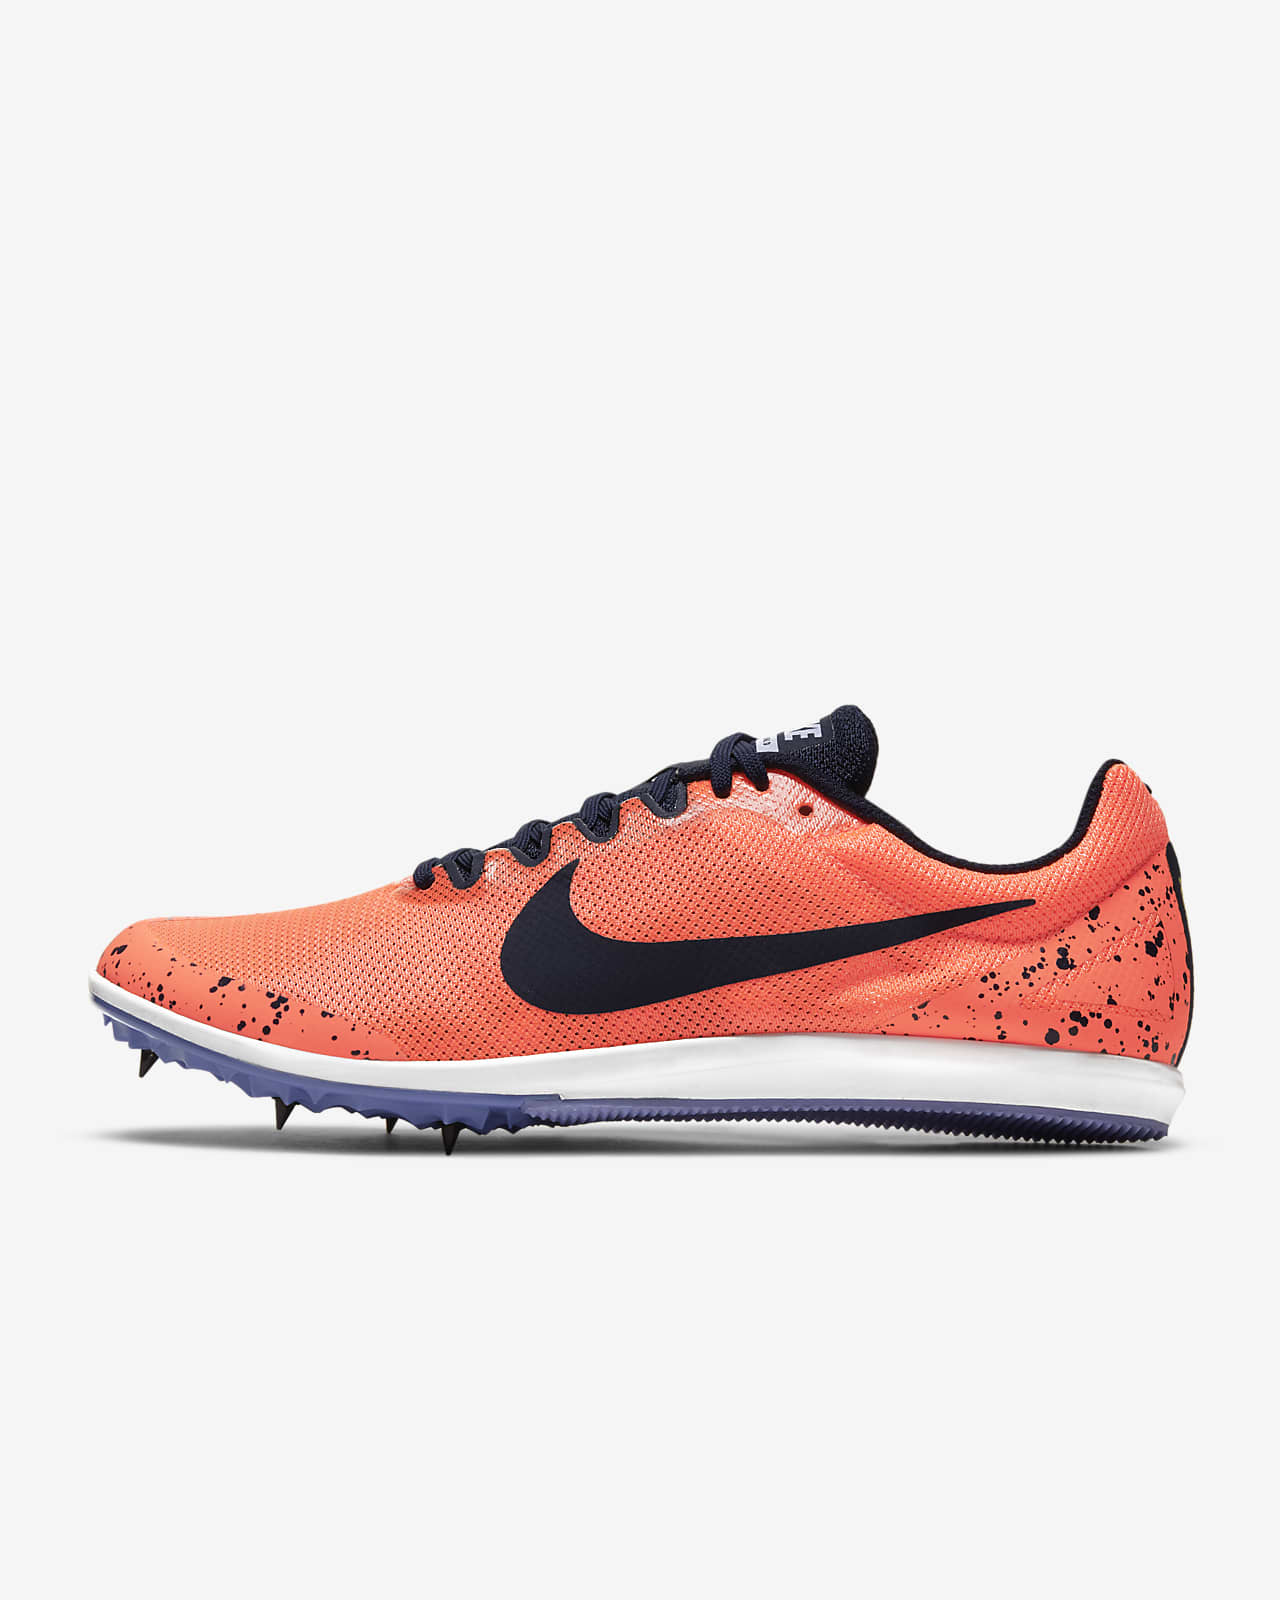 Nike Zoom Rival D 10 Track Spikes